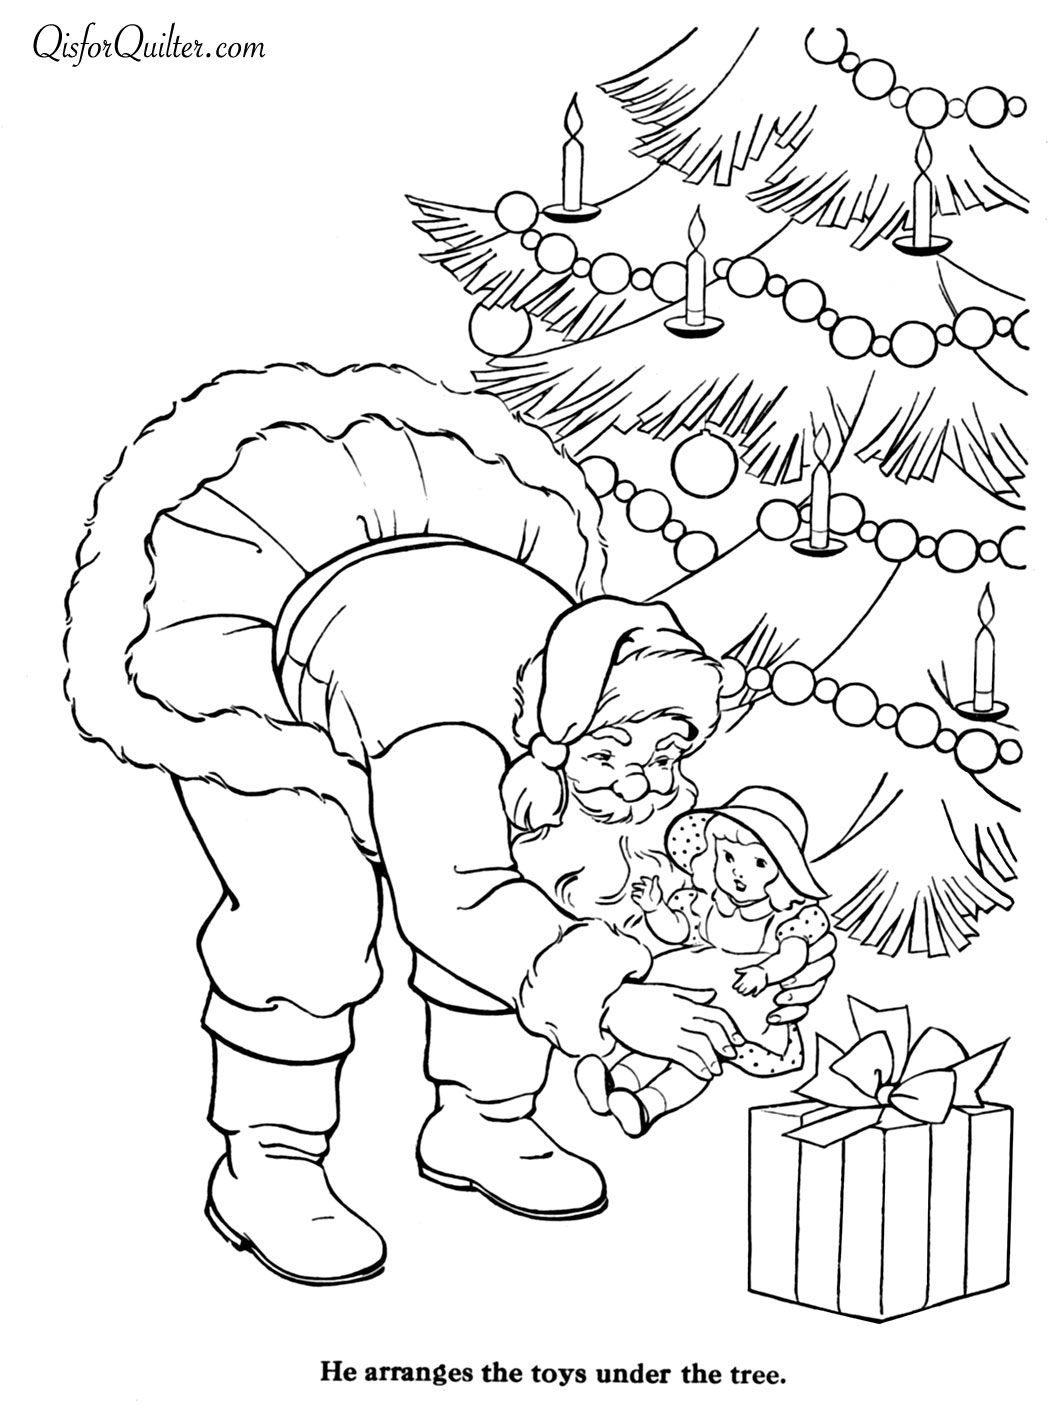 Vintage Christmas Coloring Book Pages With Countdown To 1 Day Santa Quilt Pinterest